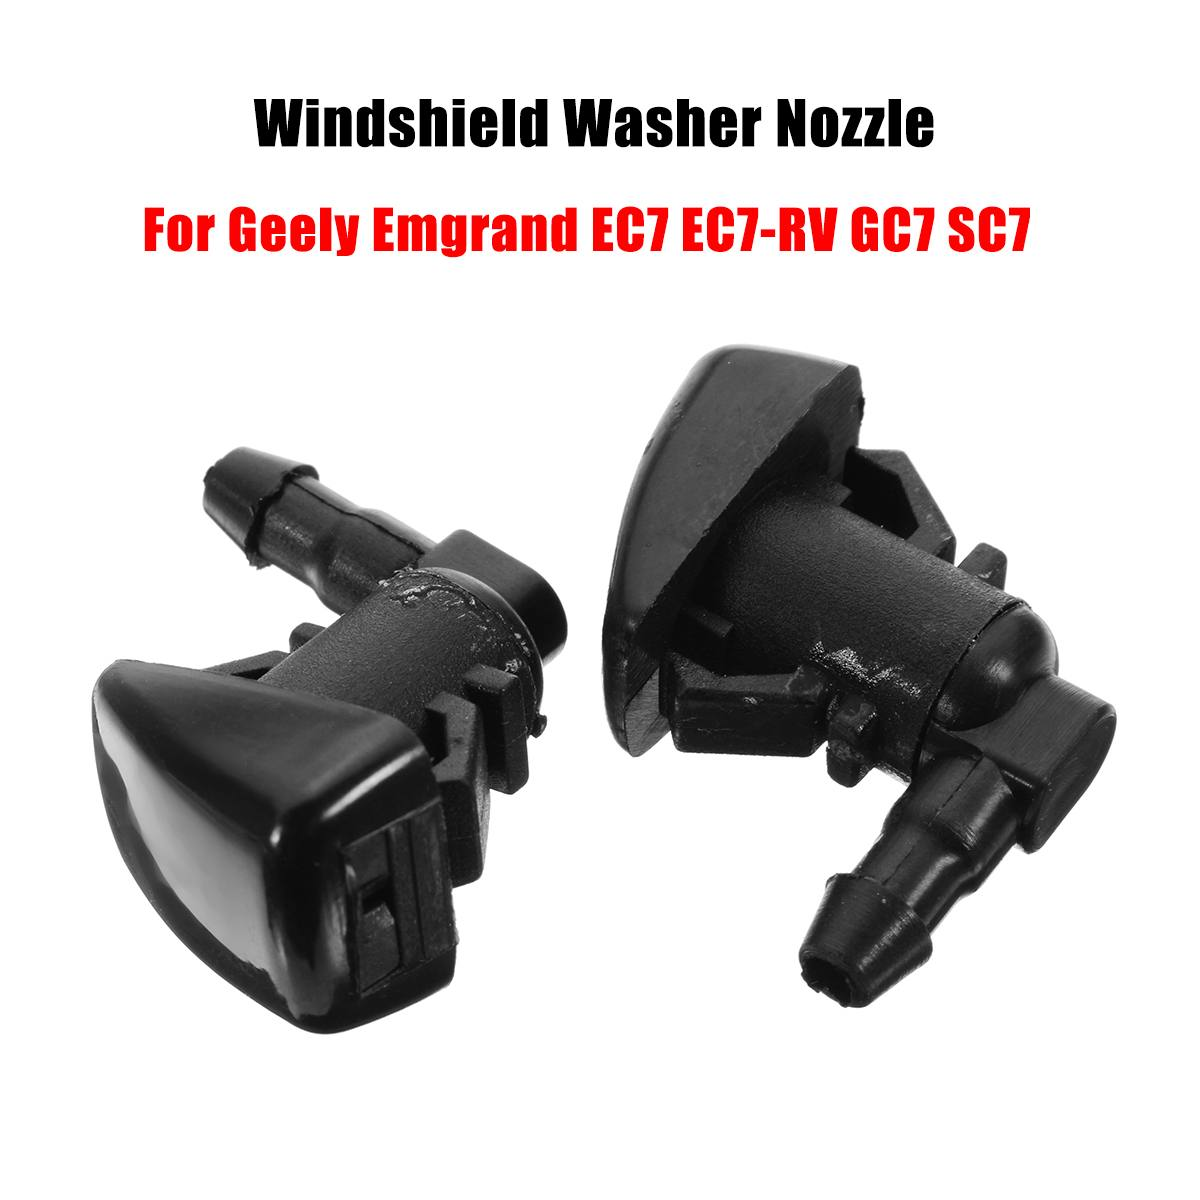 2Pcs Car Windshield Wiper Washer Spray Nozzle Jet For Geely Emgrand EC7 EC7-RV GC7 SC7